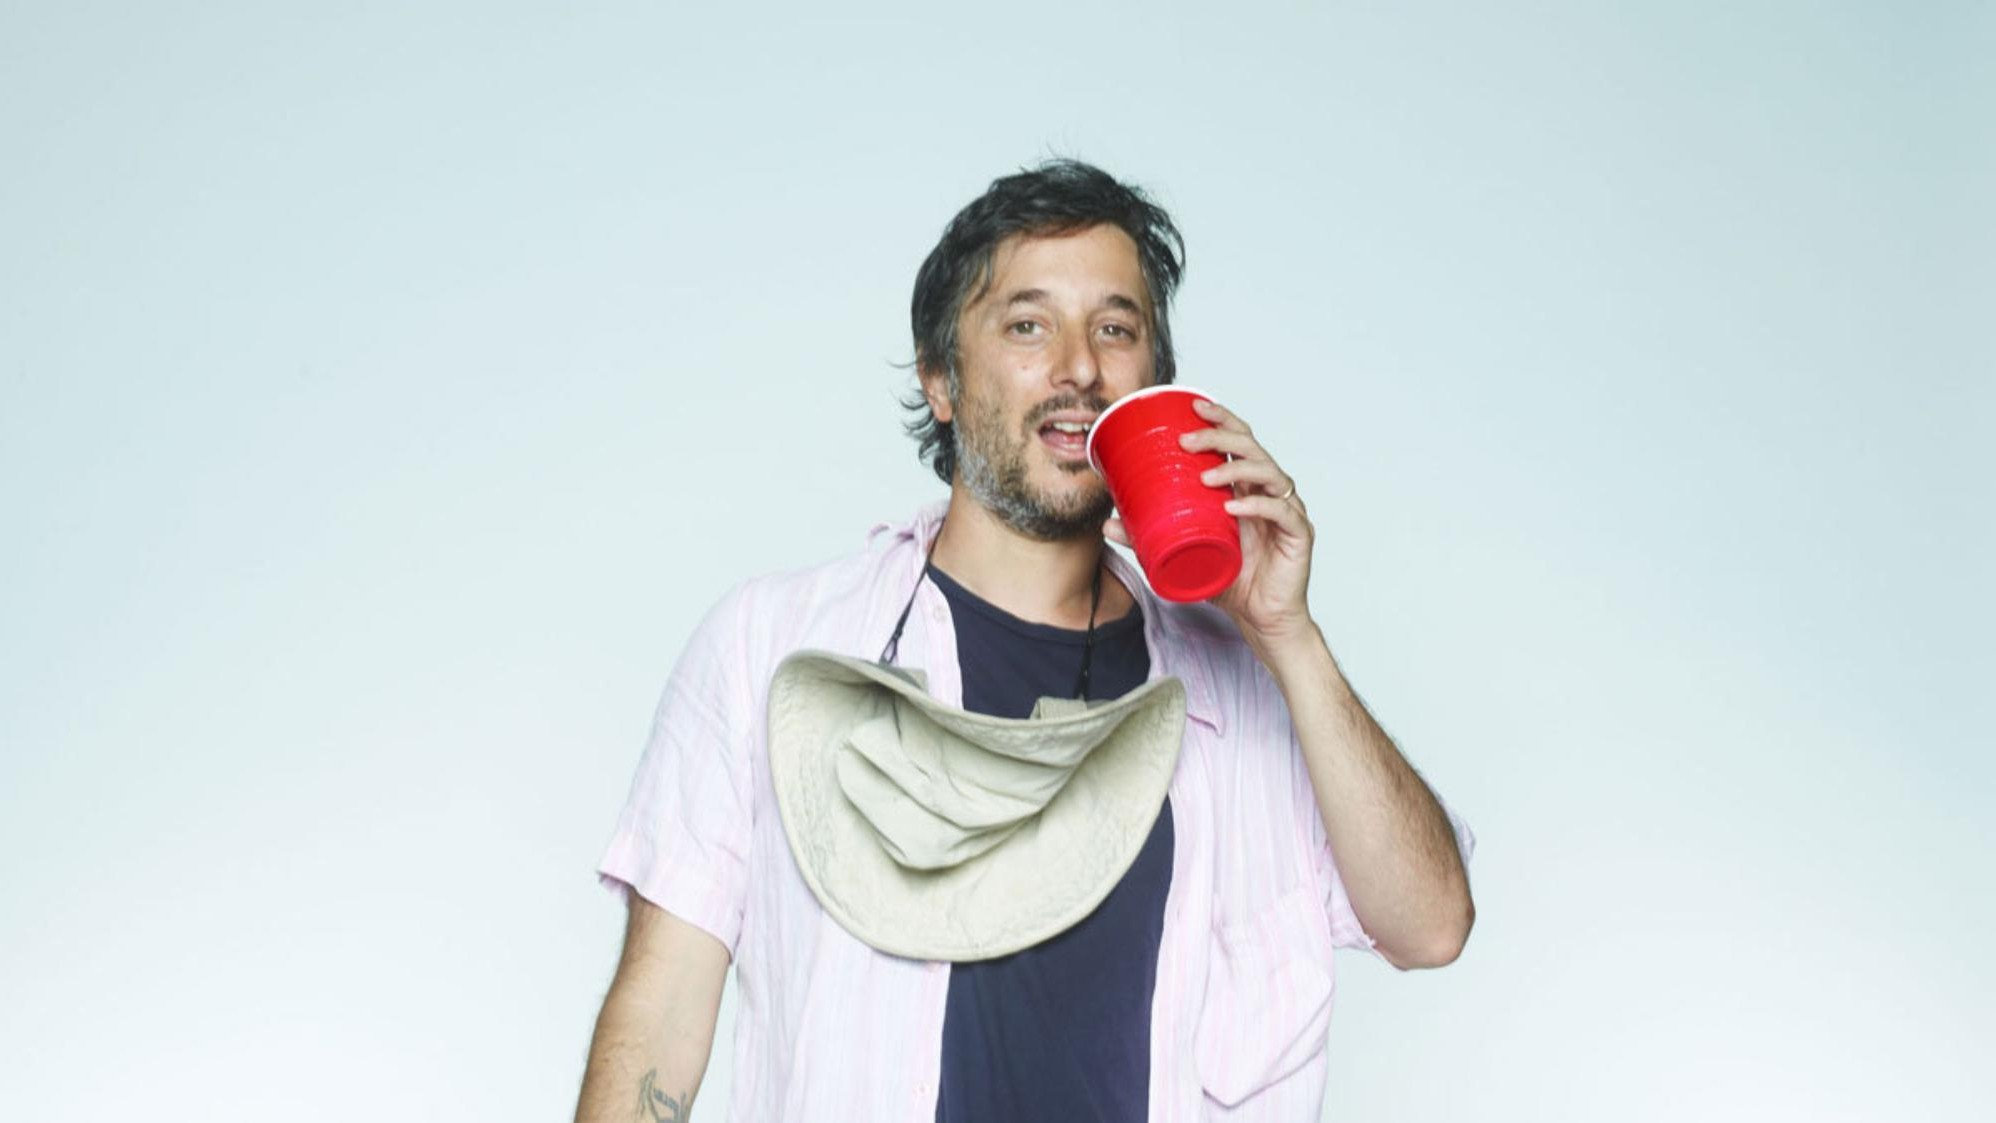 harmony korine's next film will explore a disturbing student-teacher relationship